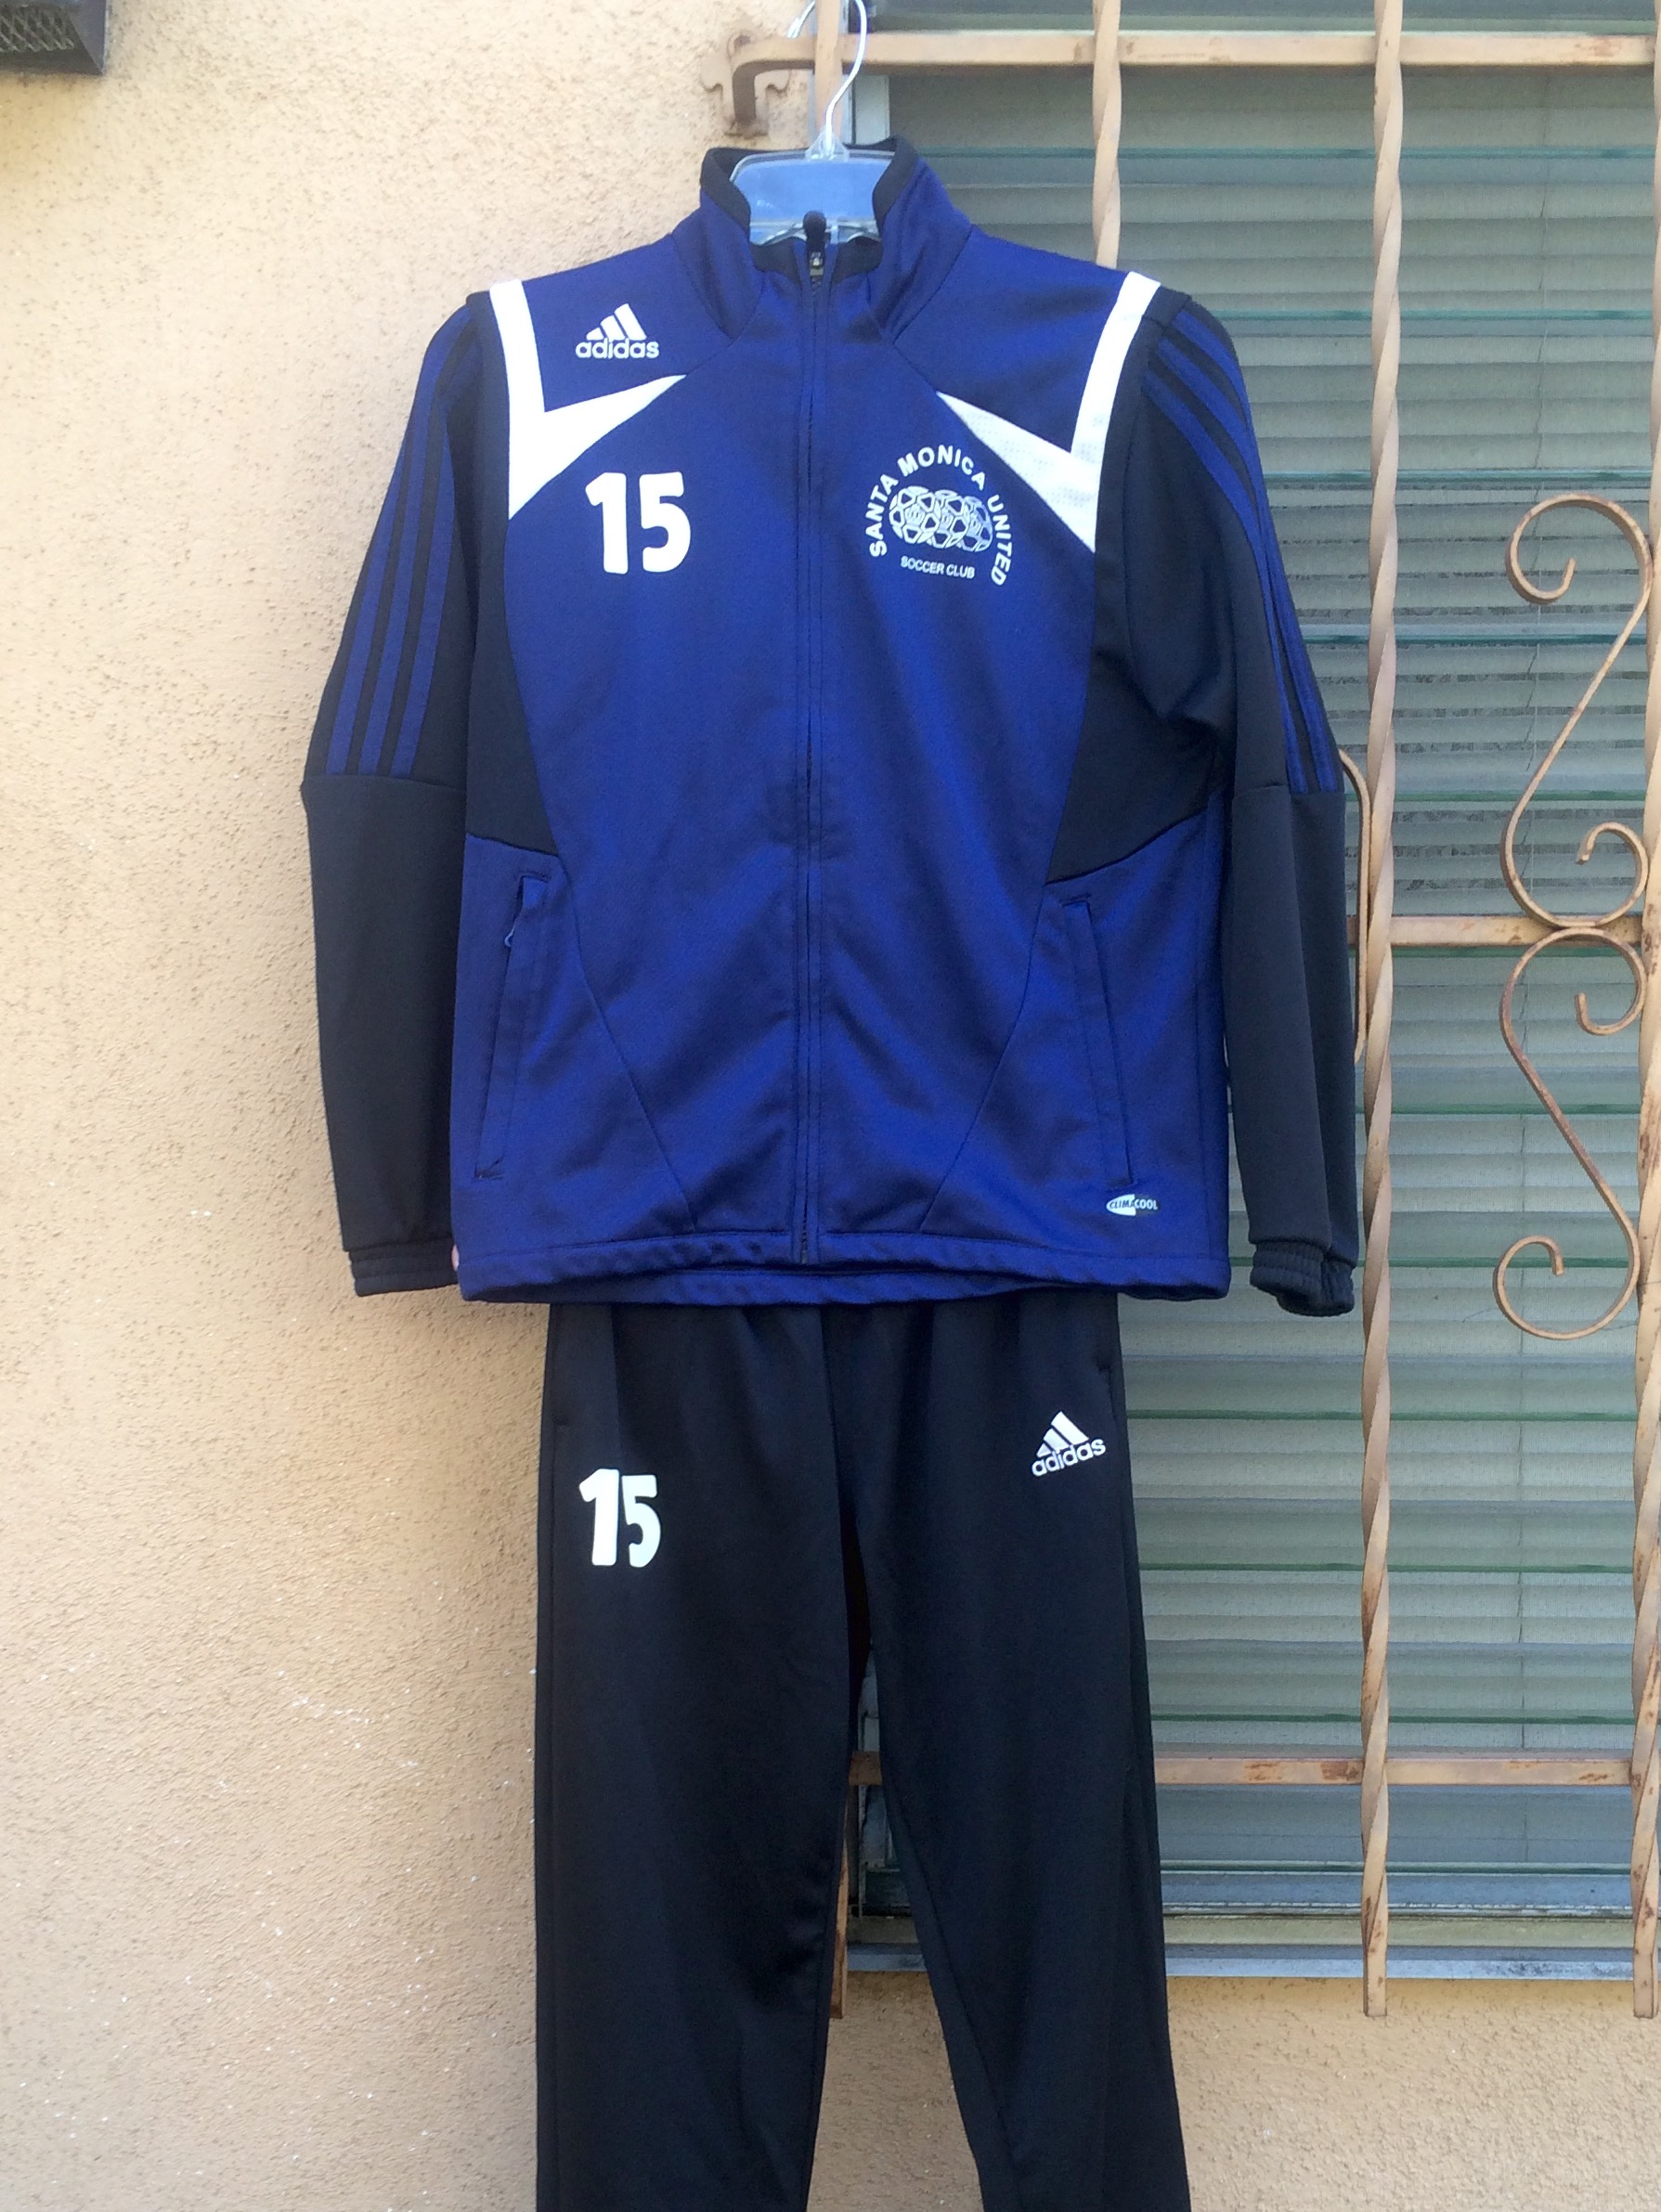 Santa Monica United Soccer Club – Warm-up Suit – ADIDAS – 2008 to 2010 -  Courtesy of Justin Chin 853fdee2d744